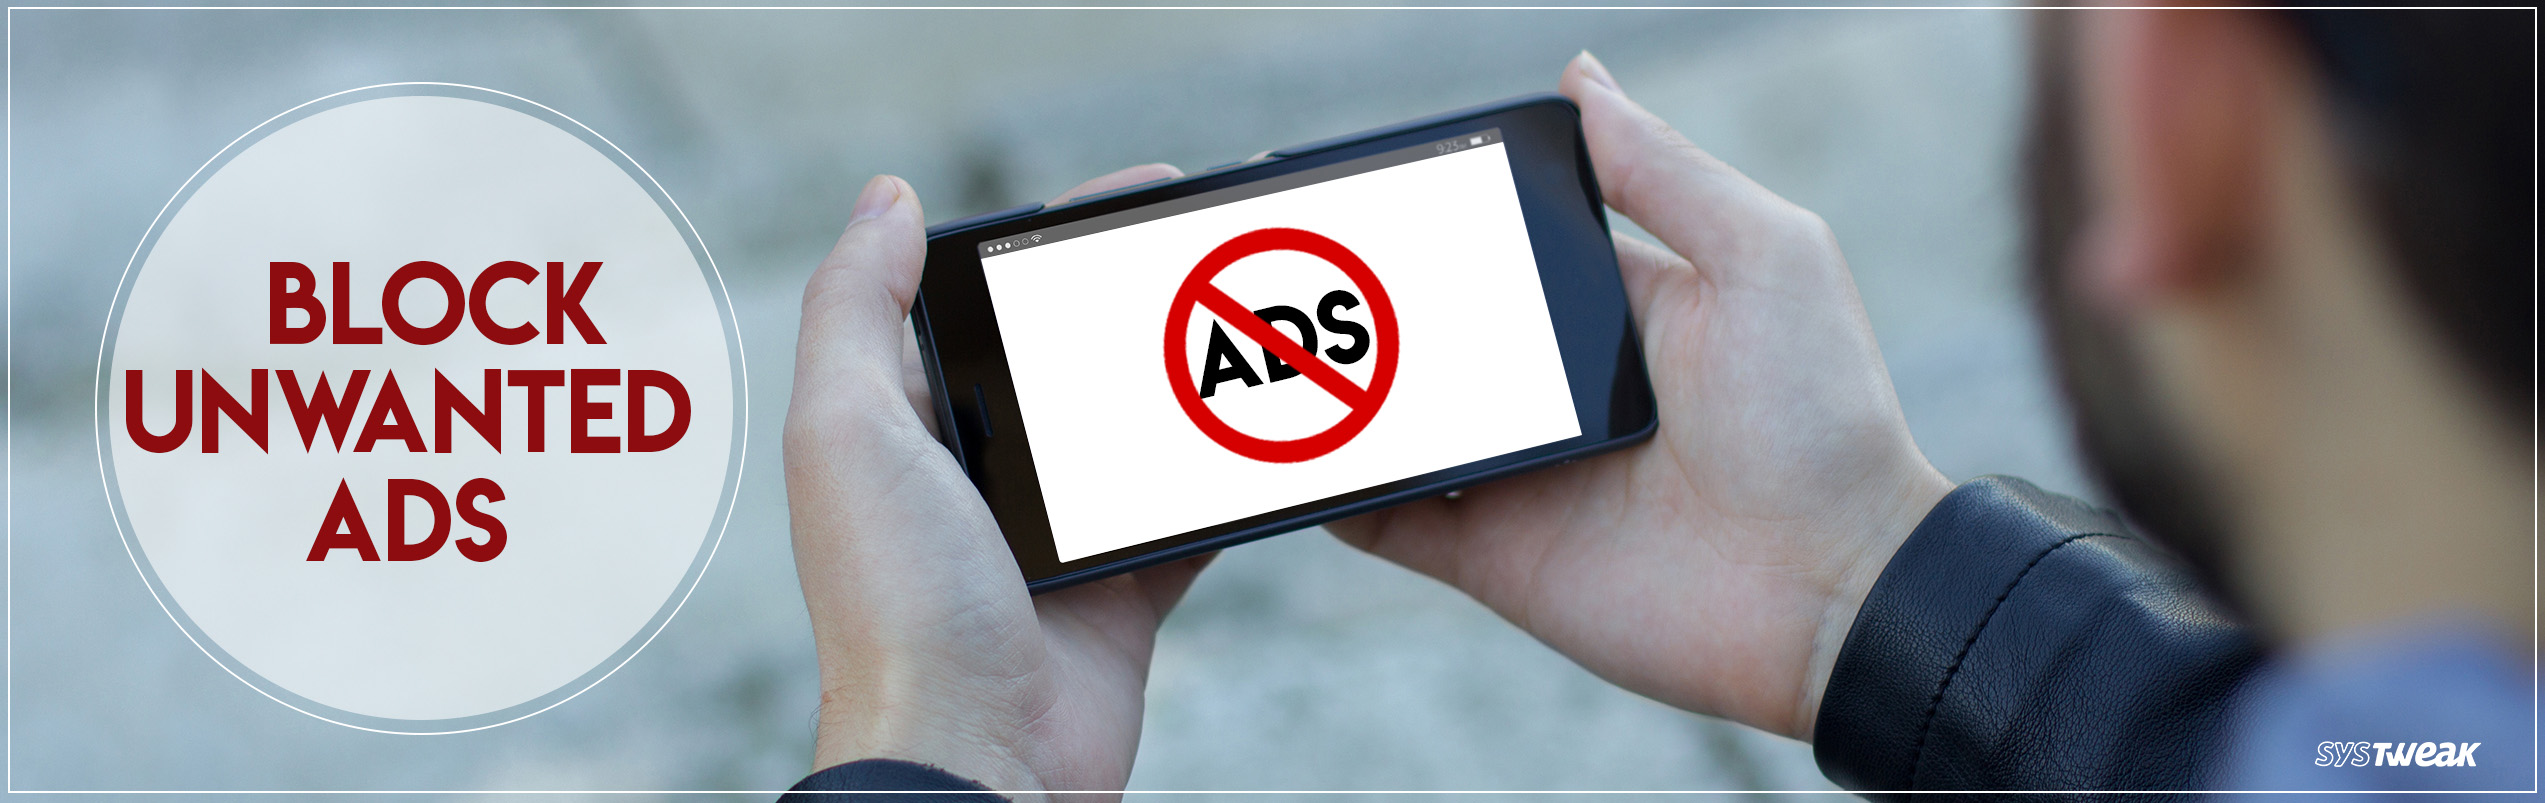 5 Best Ad Blocker Apps on Android In 2018